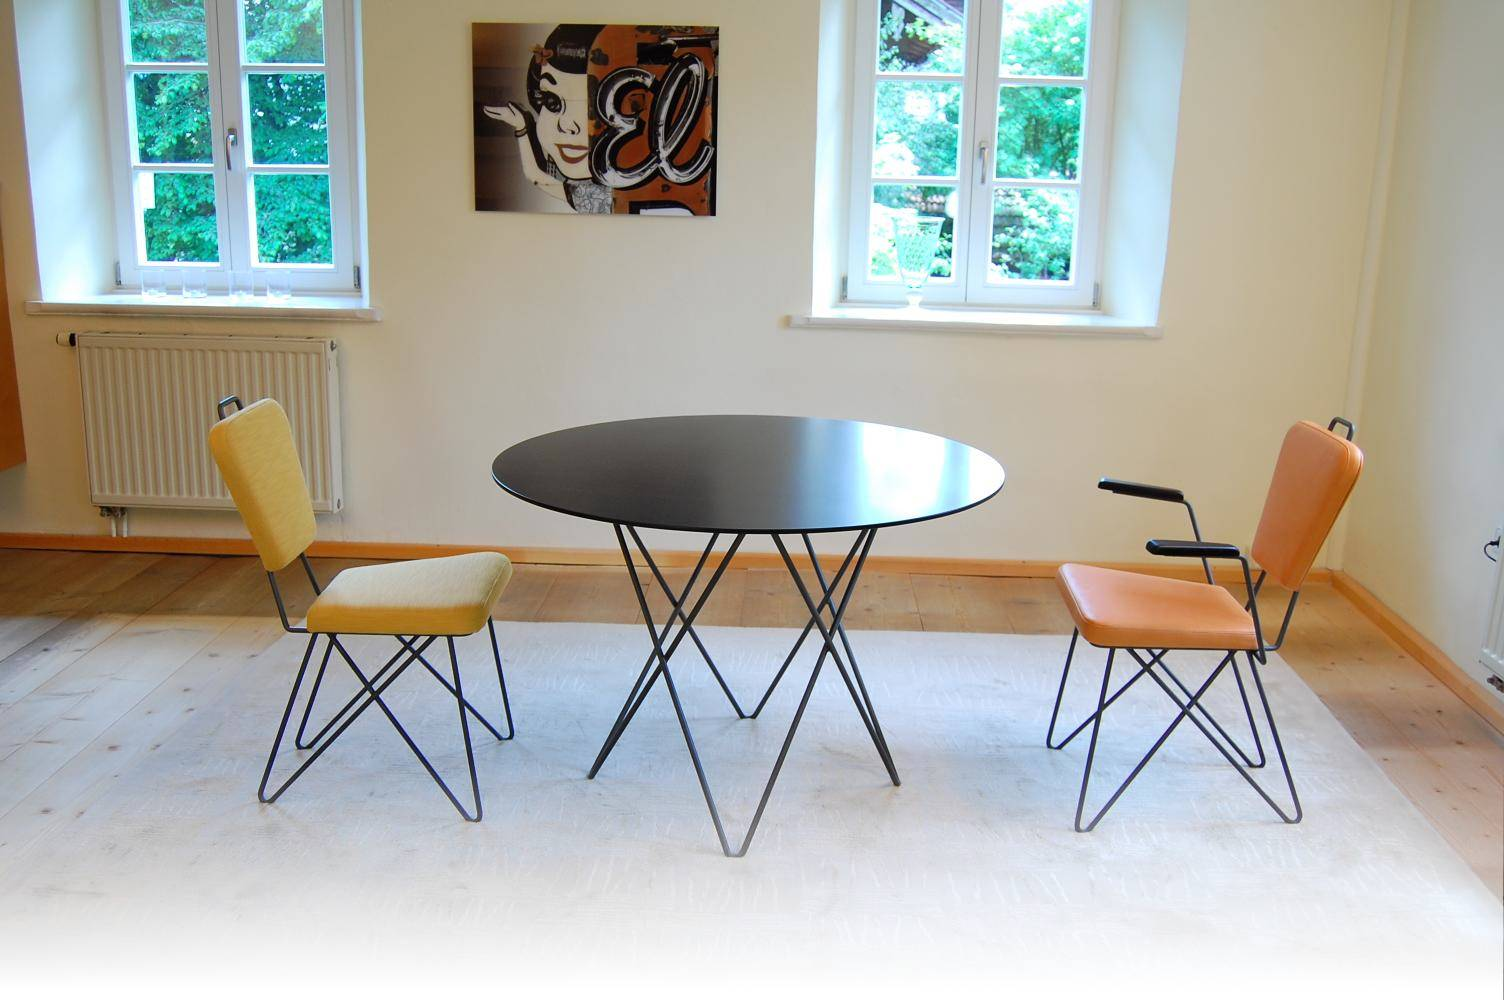 Axel-Veit_AX-chairs-table